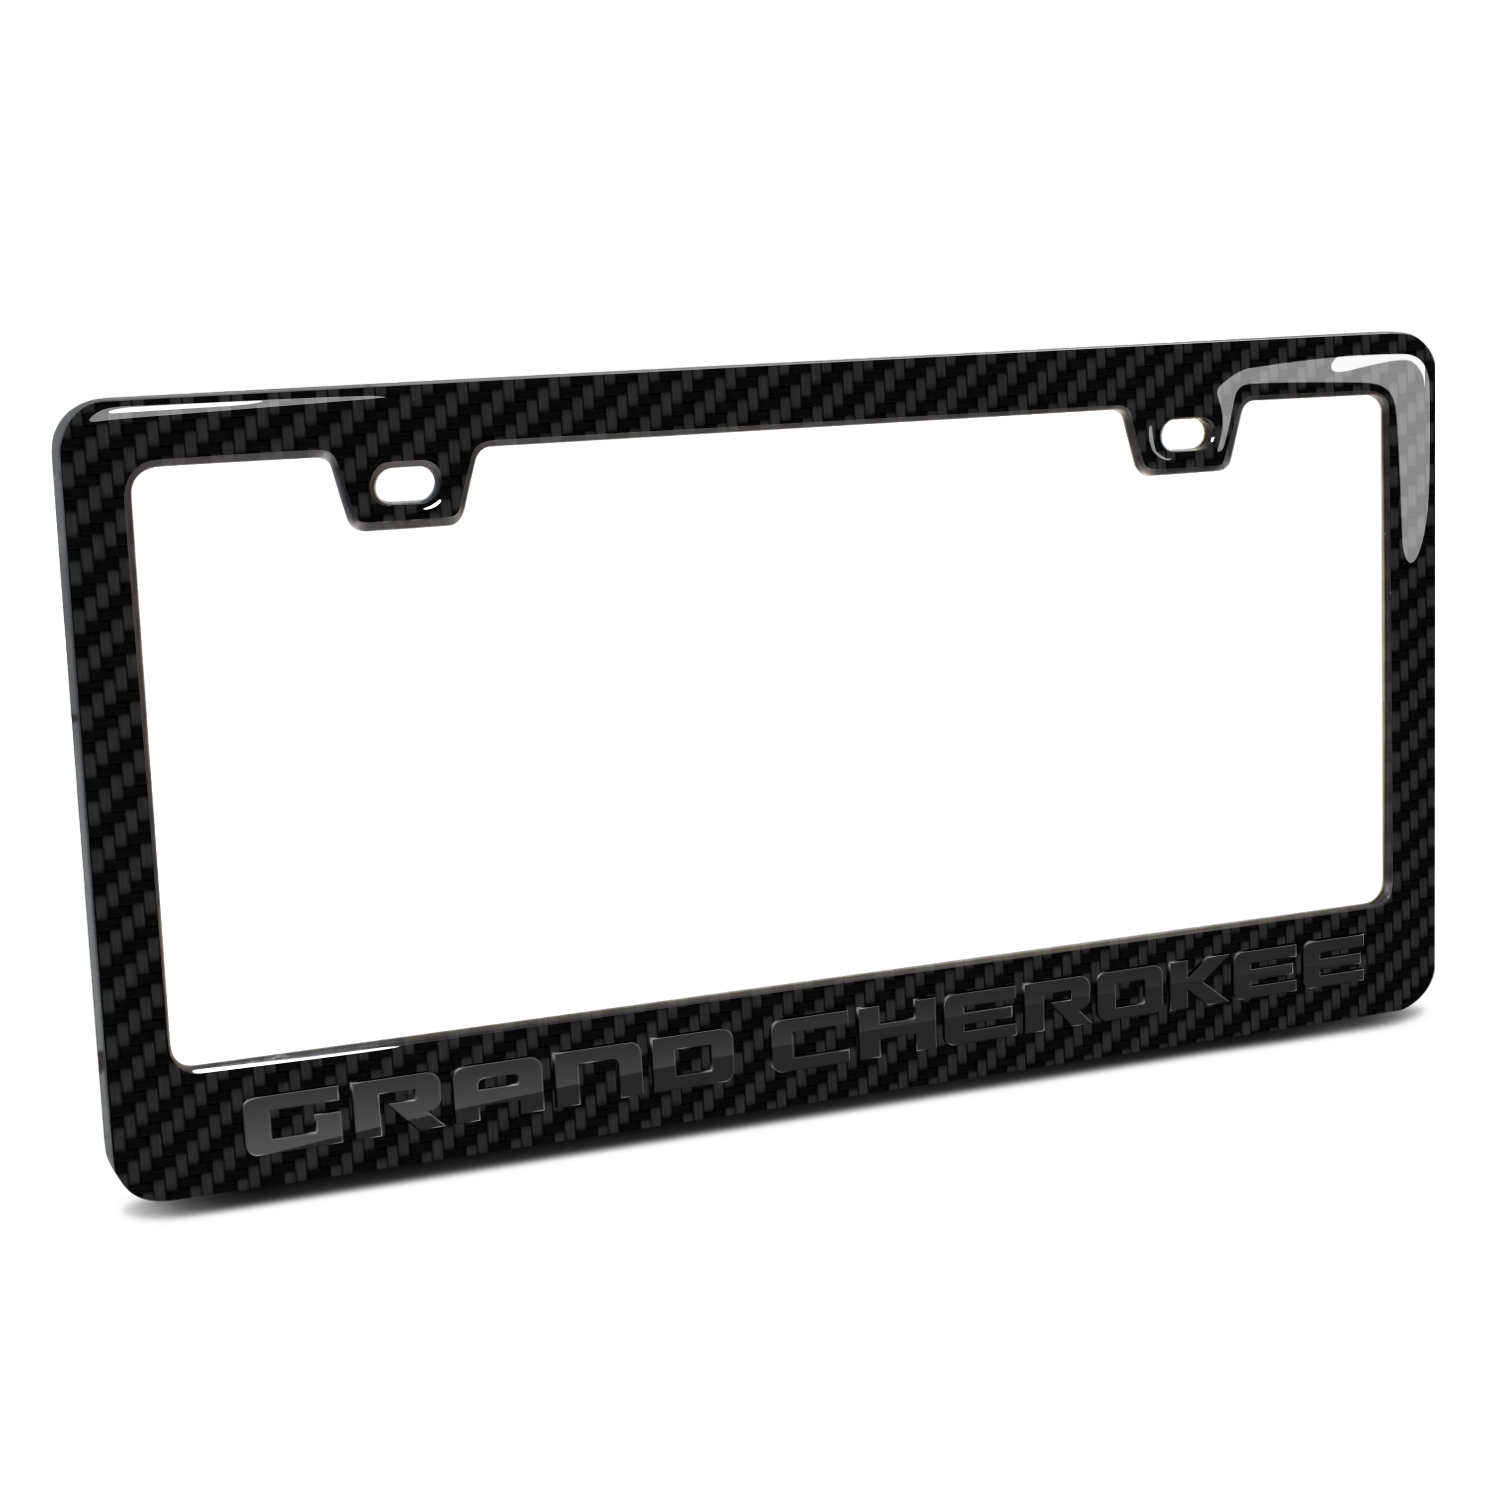 Jeep Grand Cherokee in 3D Black on Black Real 3K Carbon Fiber Finish ABS Plastic License Plate Frame